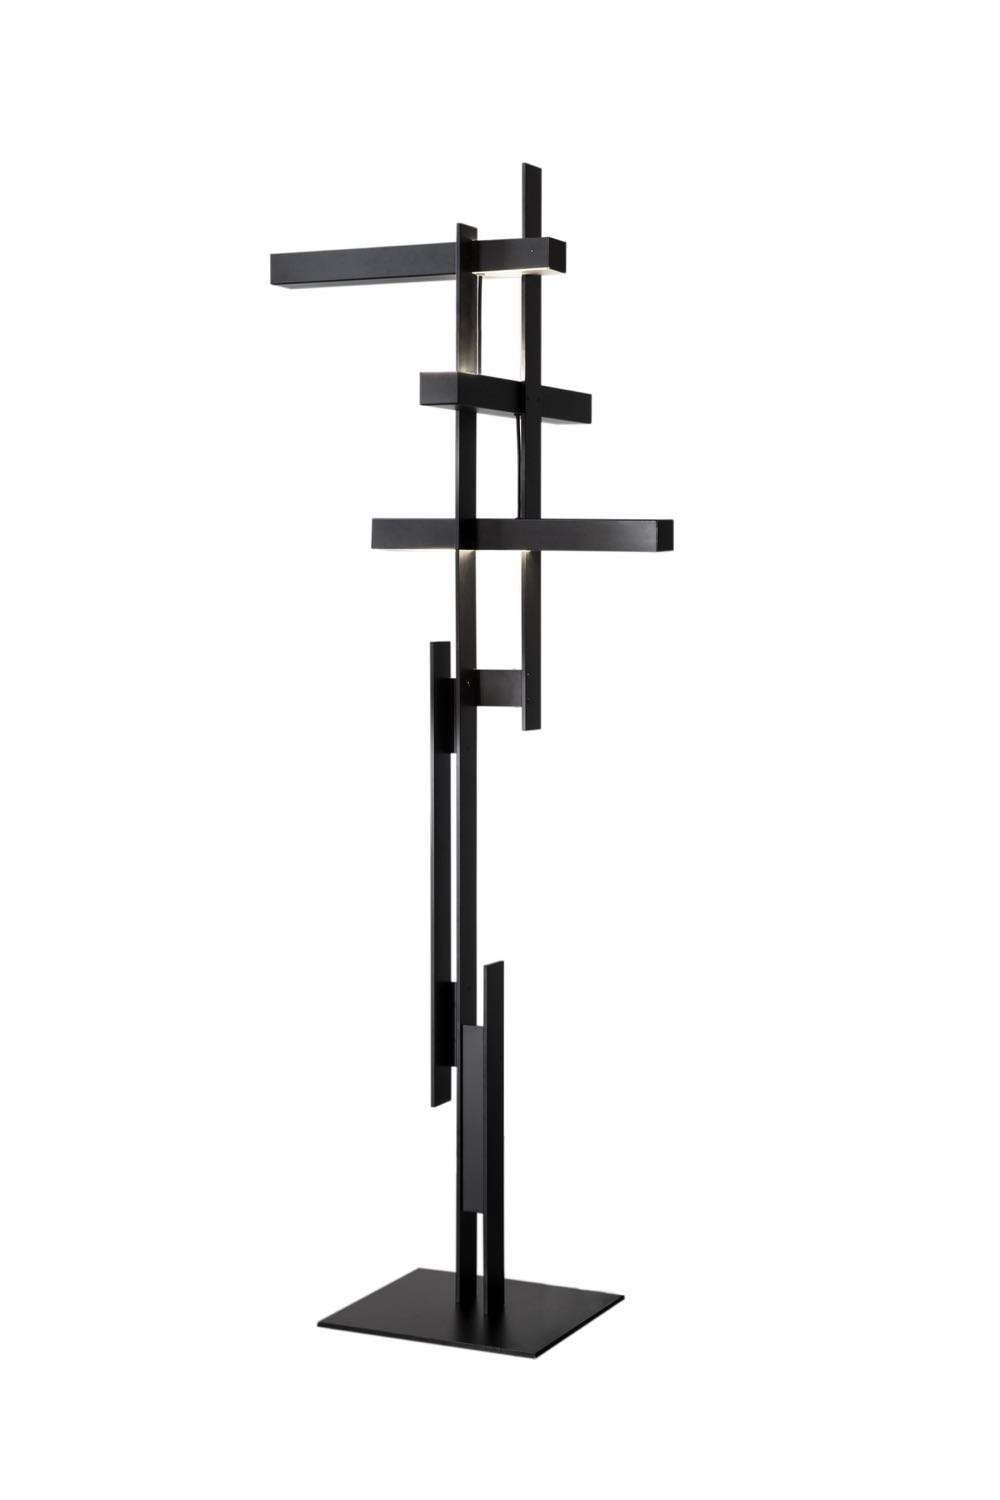 The highly sculptural 'LAS' floor lamp by Misto-o for Oluce. Mist-o are Tommaso Nani and Noa Ikeuchi.